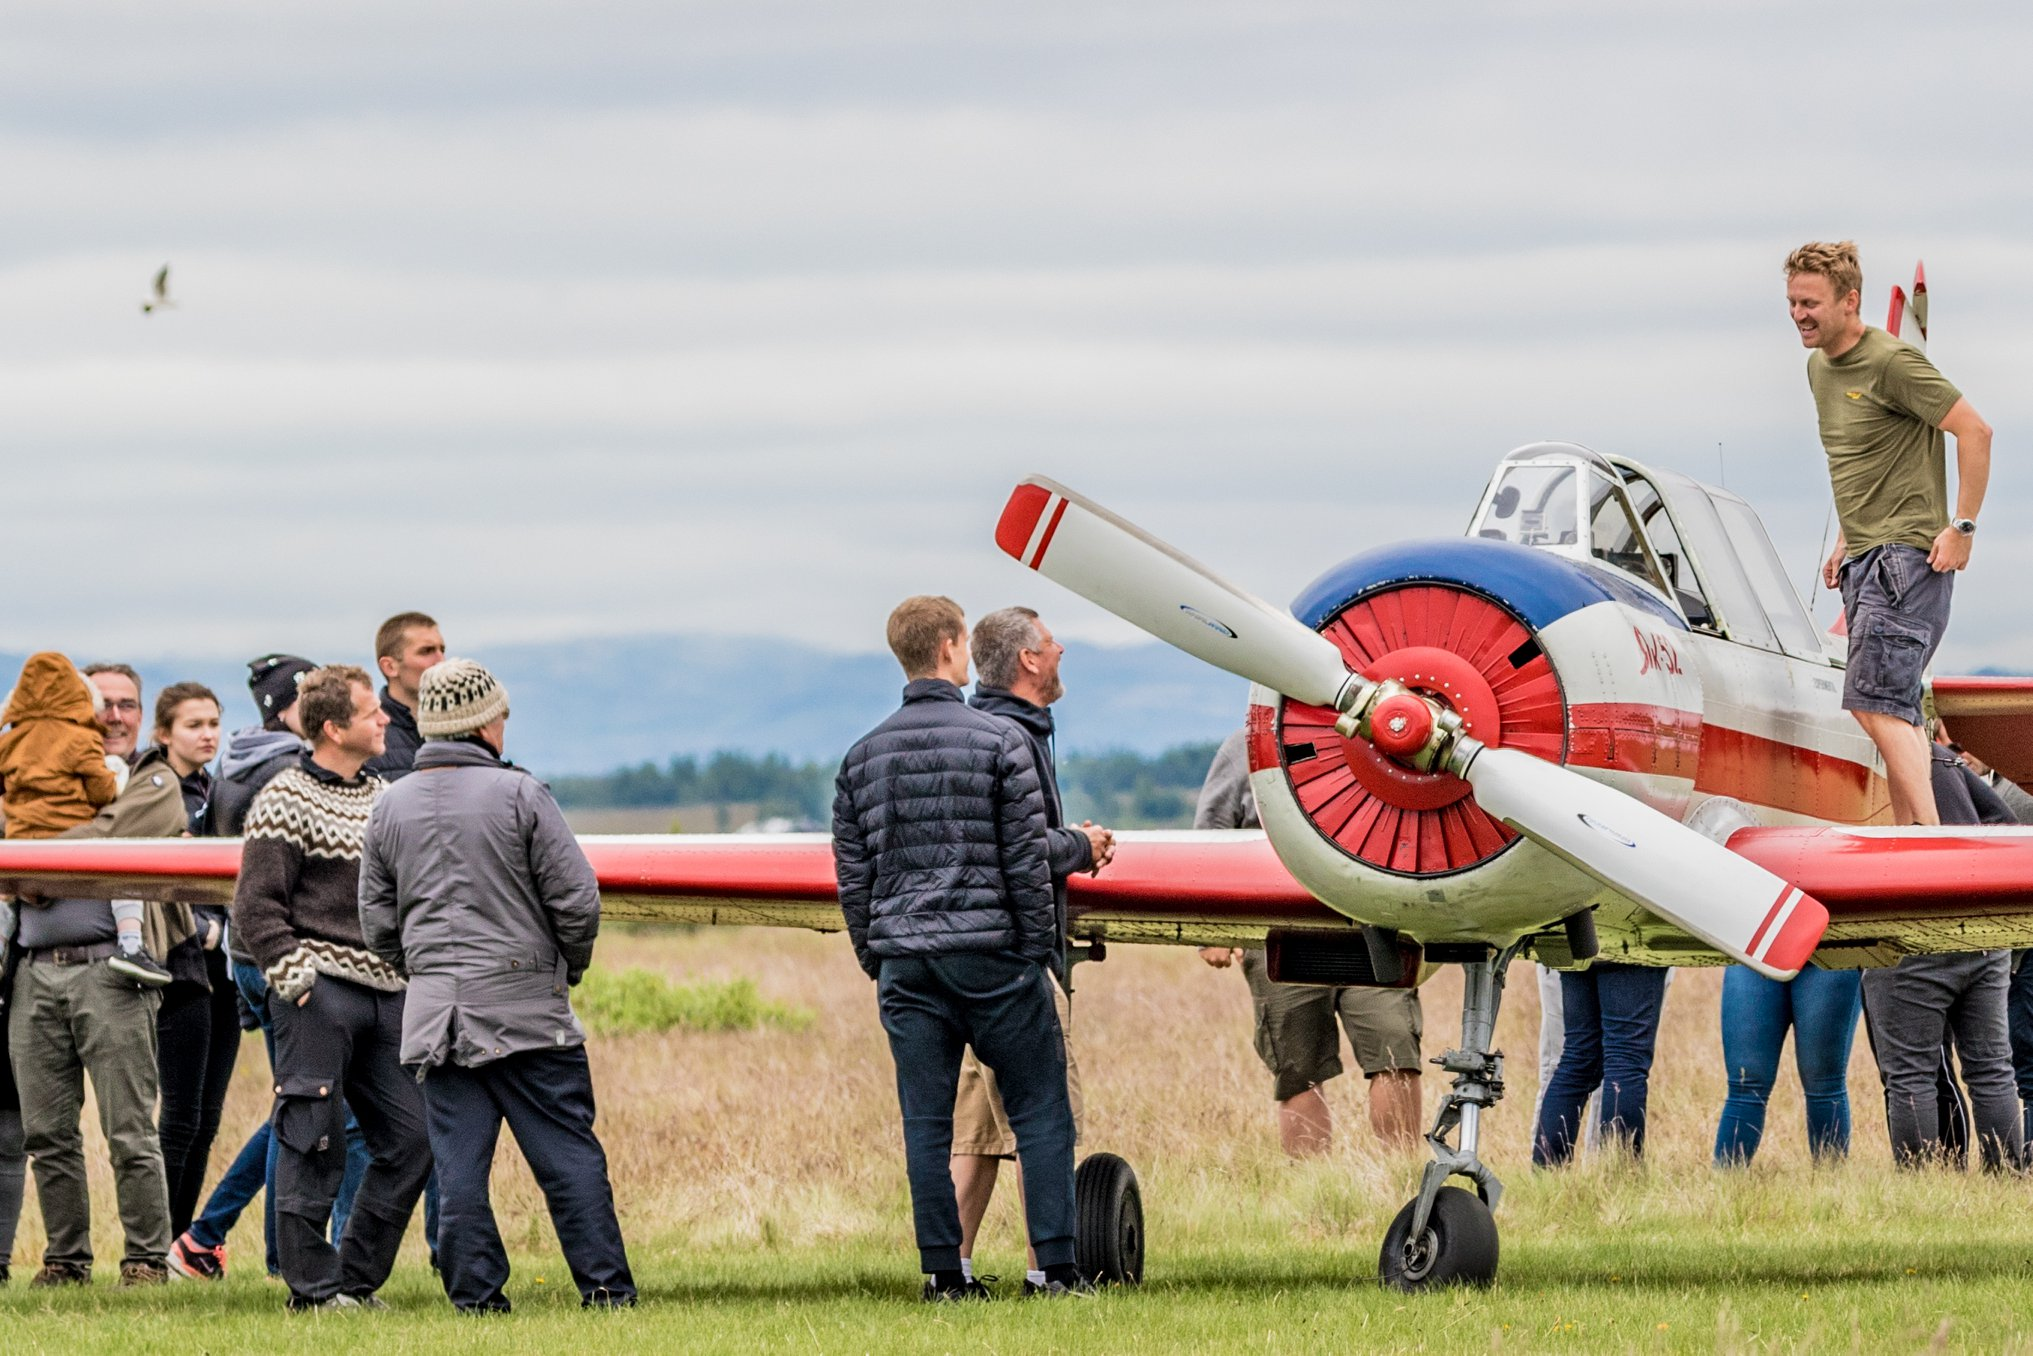 """Snorri Bjarnvin Jónsson is standing on the wing of Yak-52 TF-BCX before the show on the plane at """"Allt sem flýgur 2019"""" in Hella// Source: Andres Thorarinsson"""